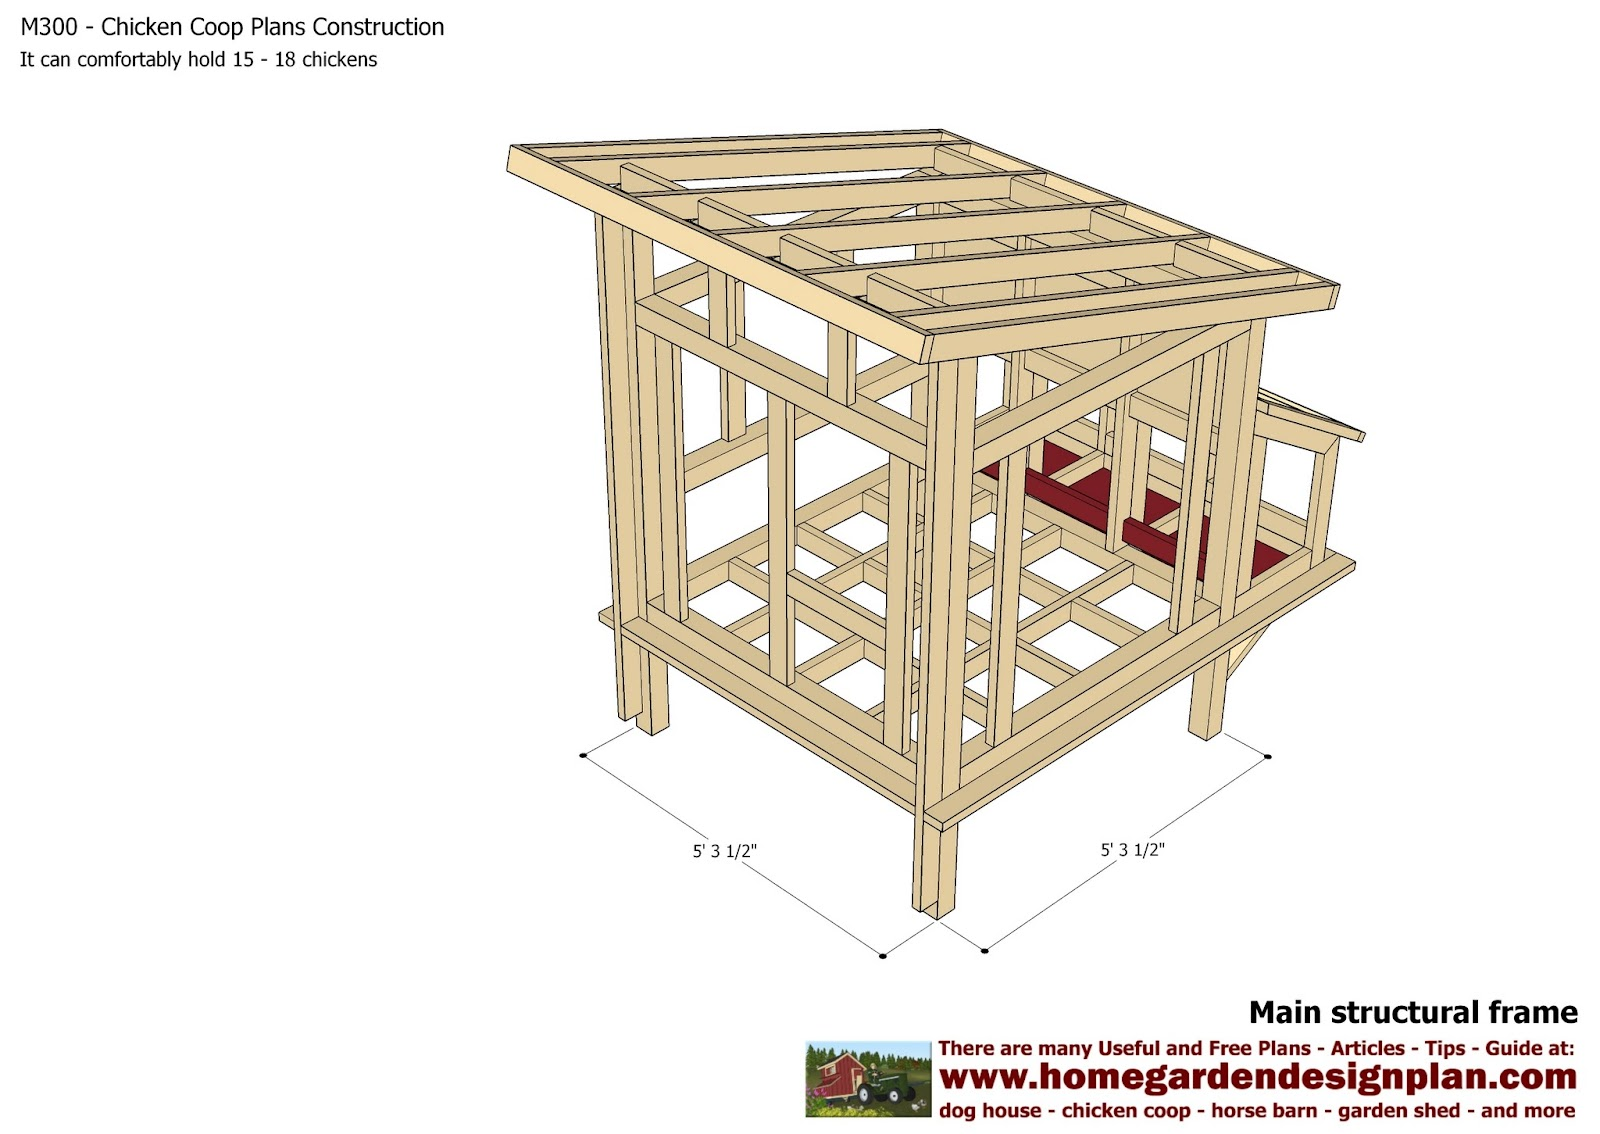 Home garden plans m300 chicken coop plans chicken for How to build a chicken hutch